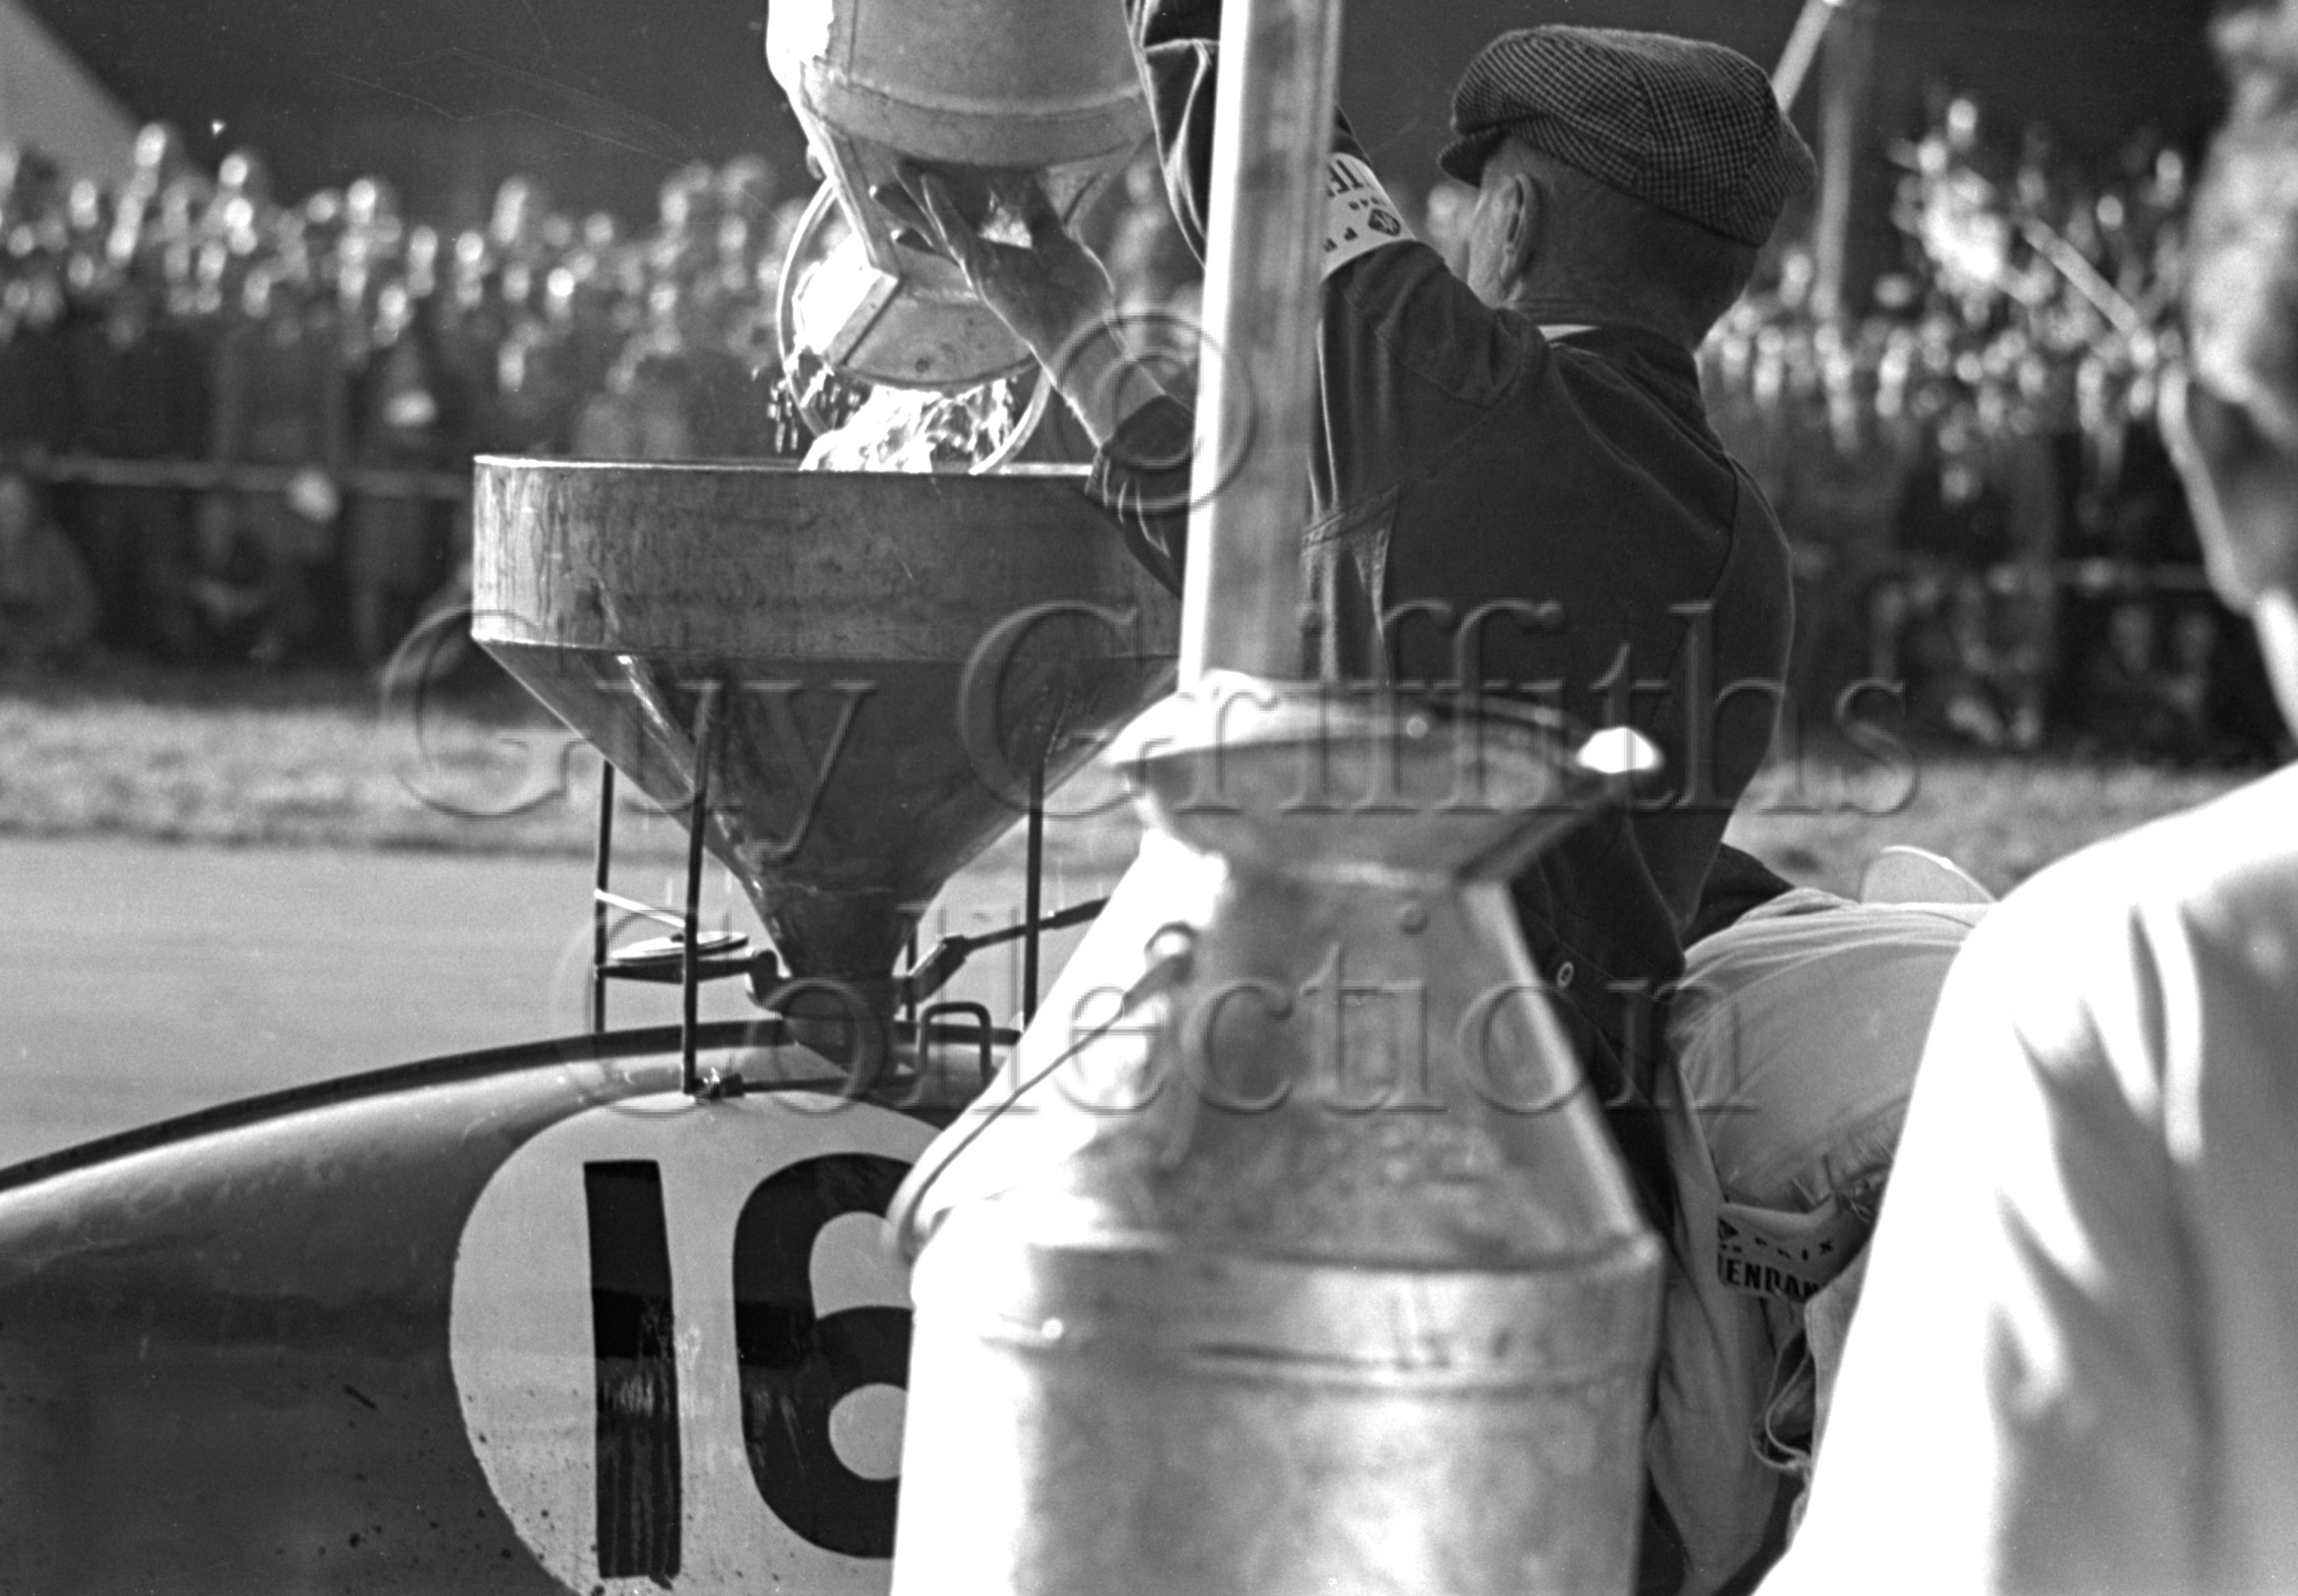 9-141–F-R-Gerrard–ERA–Silverstone–02-10-1948.jpg - The Guy Griffiths Collection